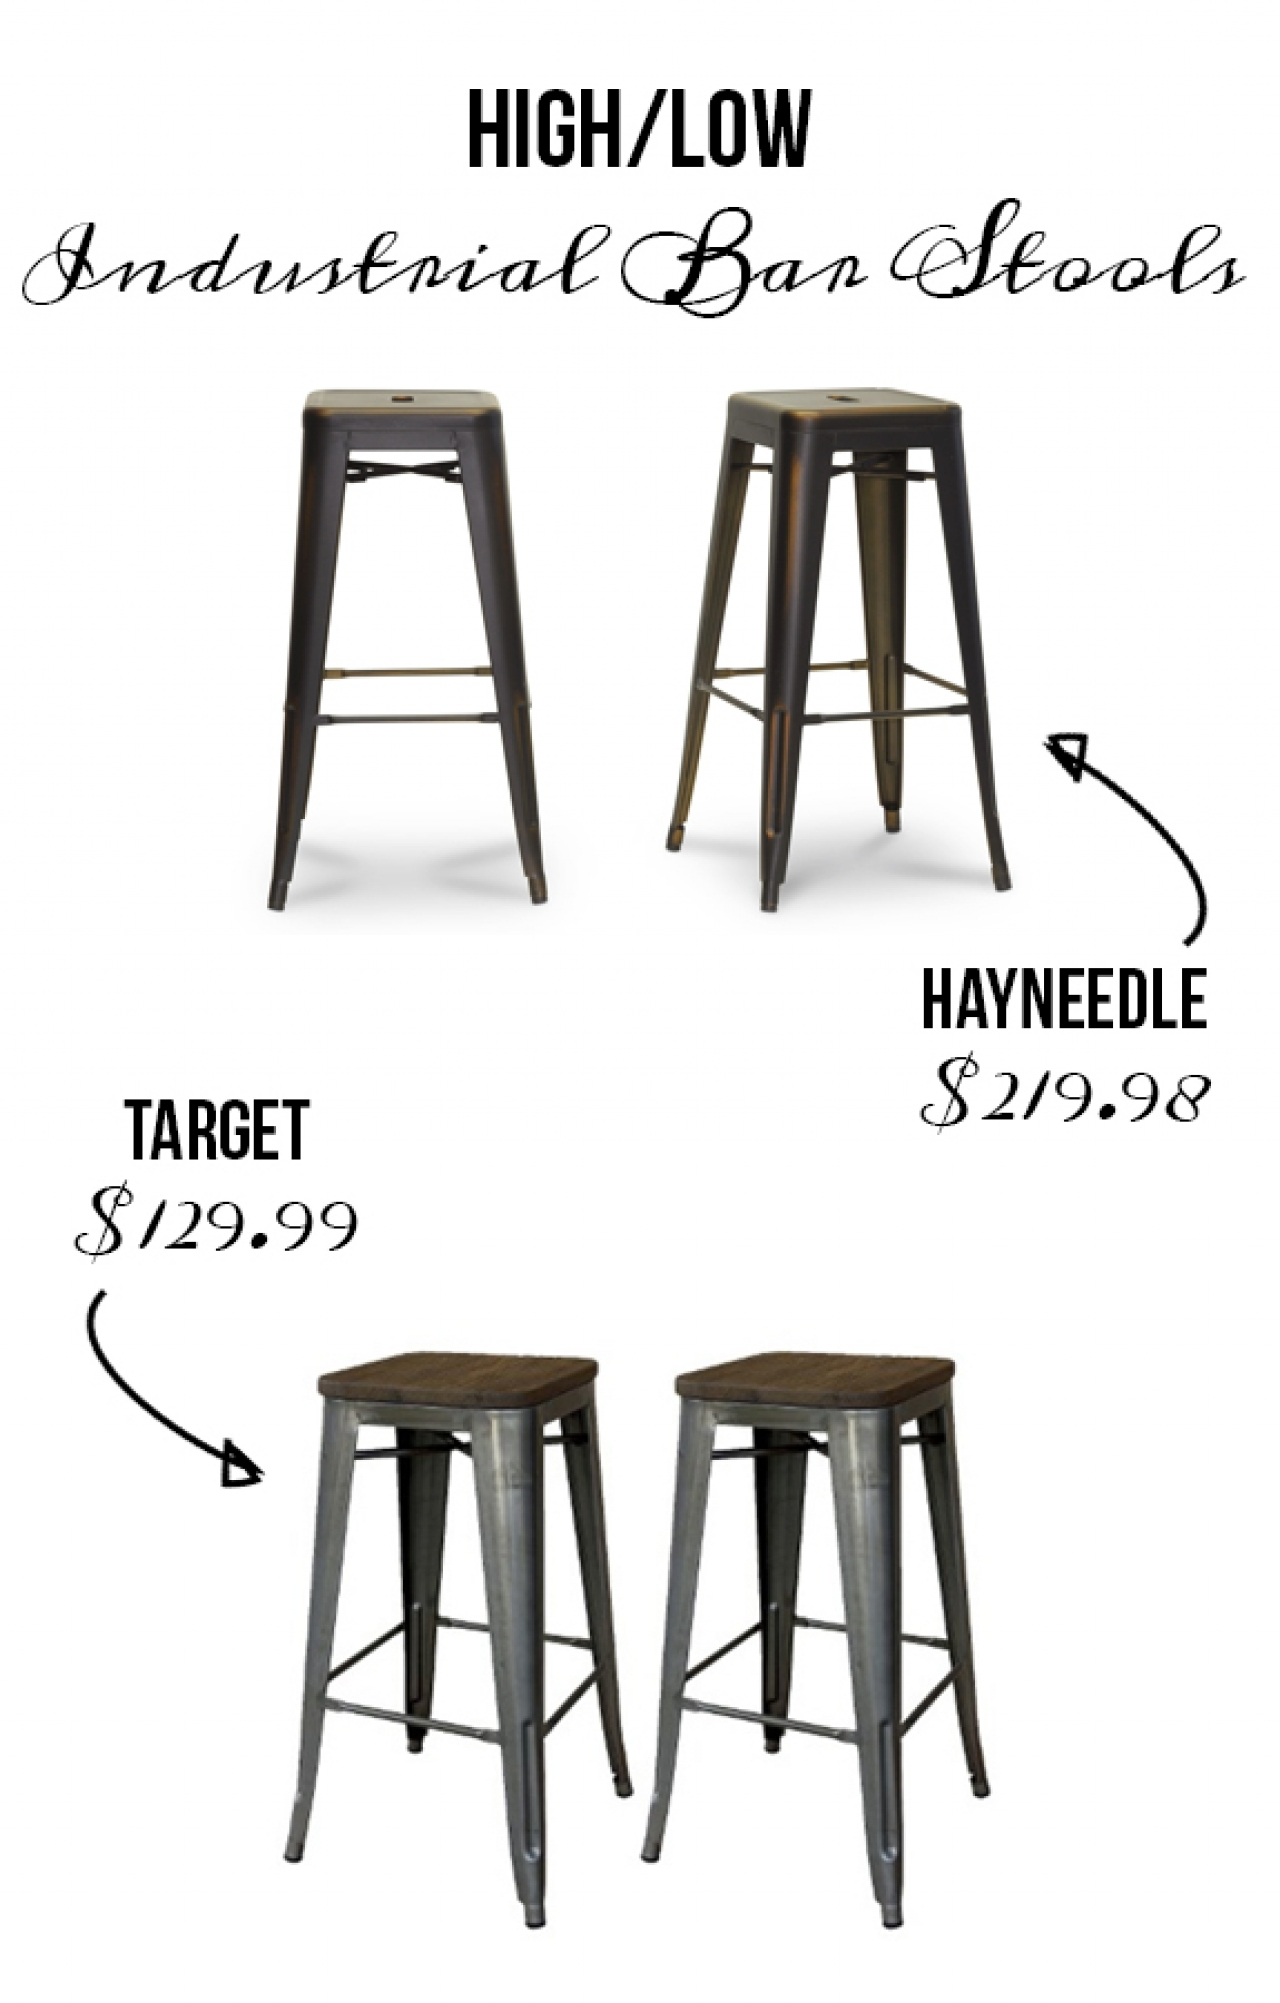 For a more modern look try these industrial style seats. They look great with any colors you might use in your glasses dishes or table runners.  sc 1 st  nousDECOR & All About High/Low: Bar Stool Edition - The Accent™ islam-shia.org